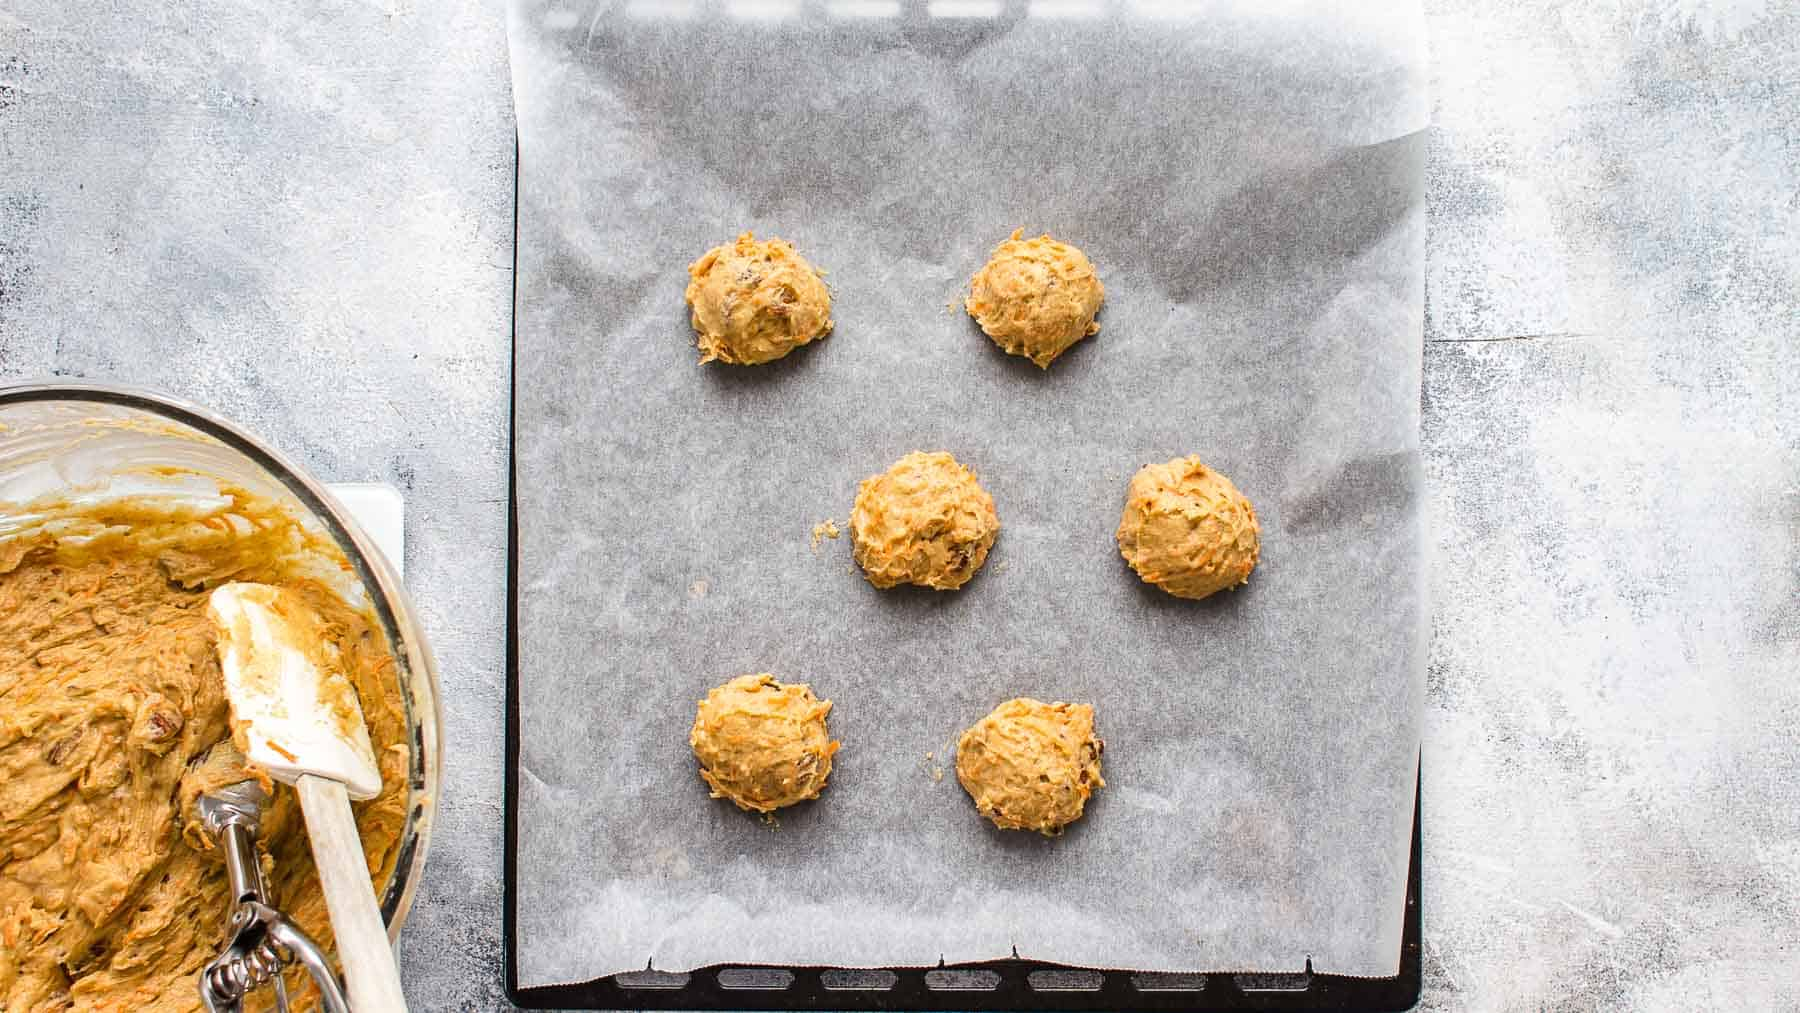 Unbaked cookie dough balls on baking sheet